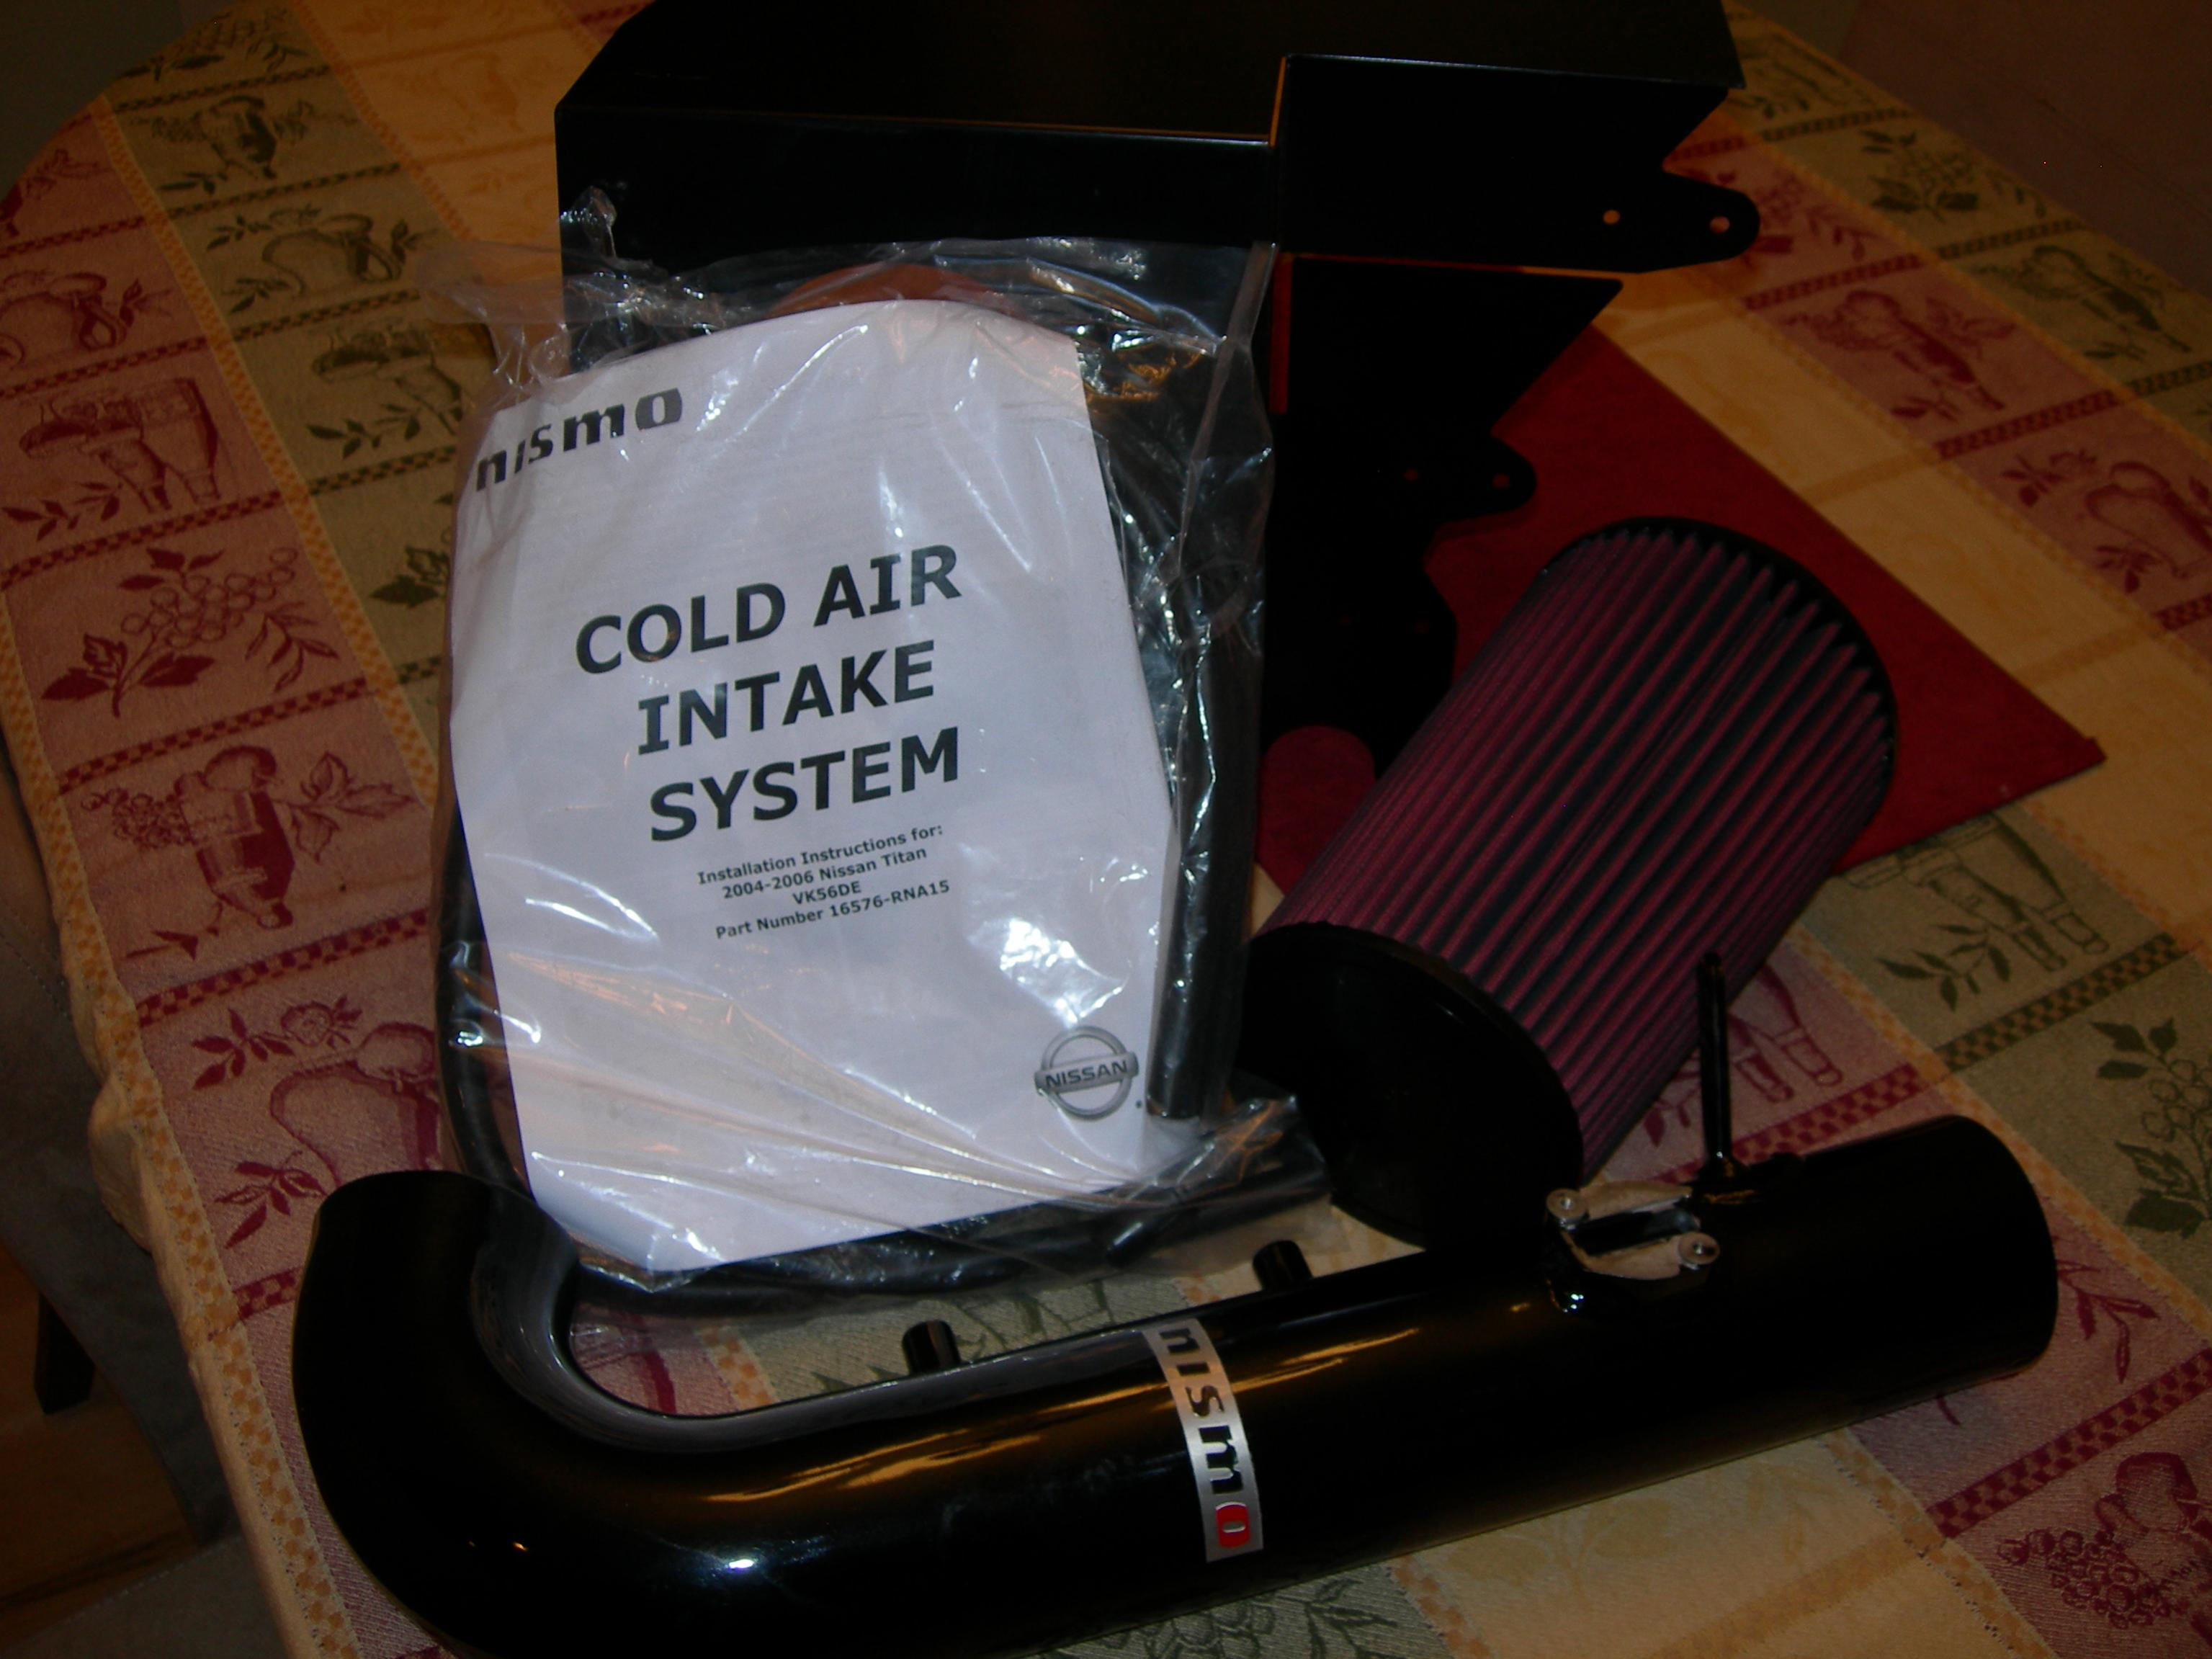 Nismo Cold Air Intake For Sale-dscn0173.jpg